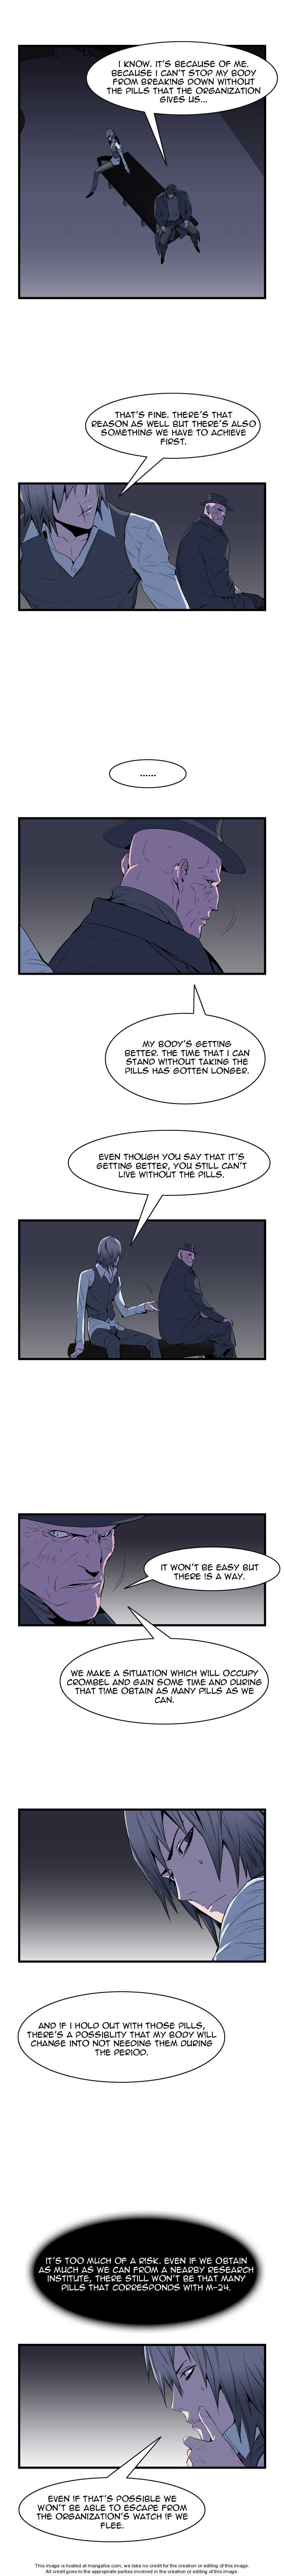 Noblesse 63 Page 2